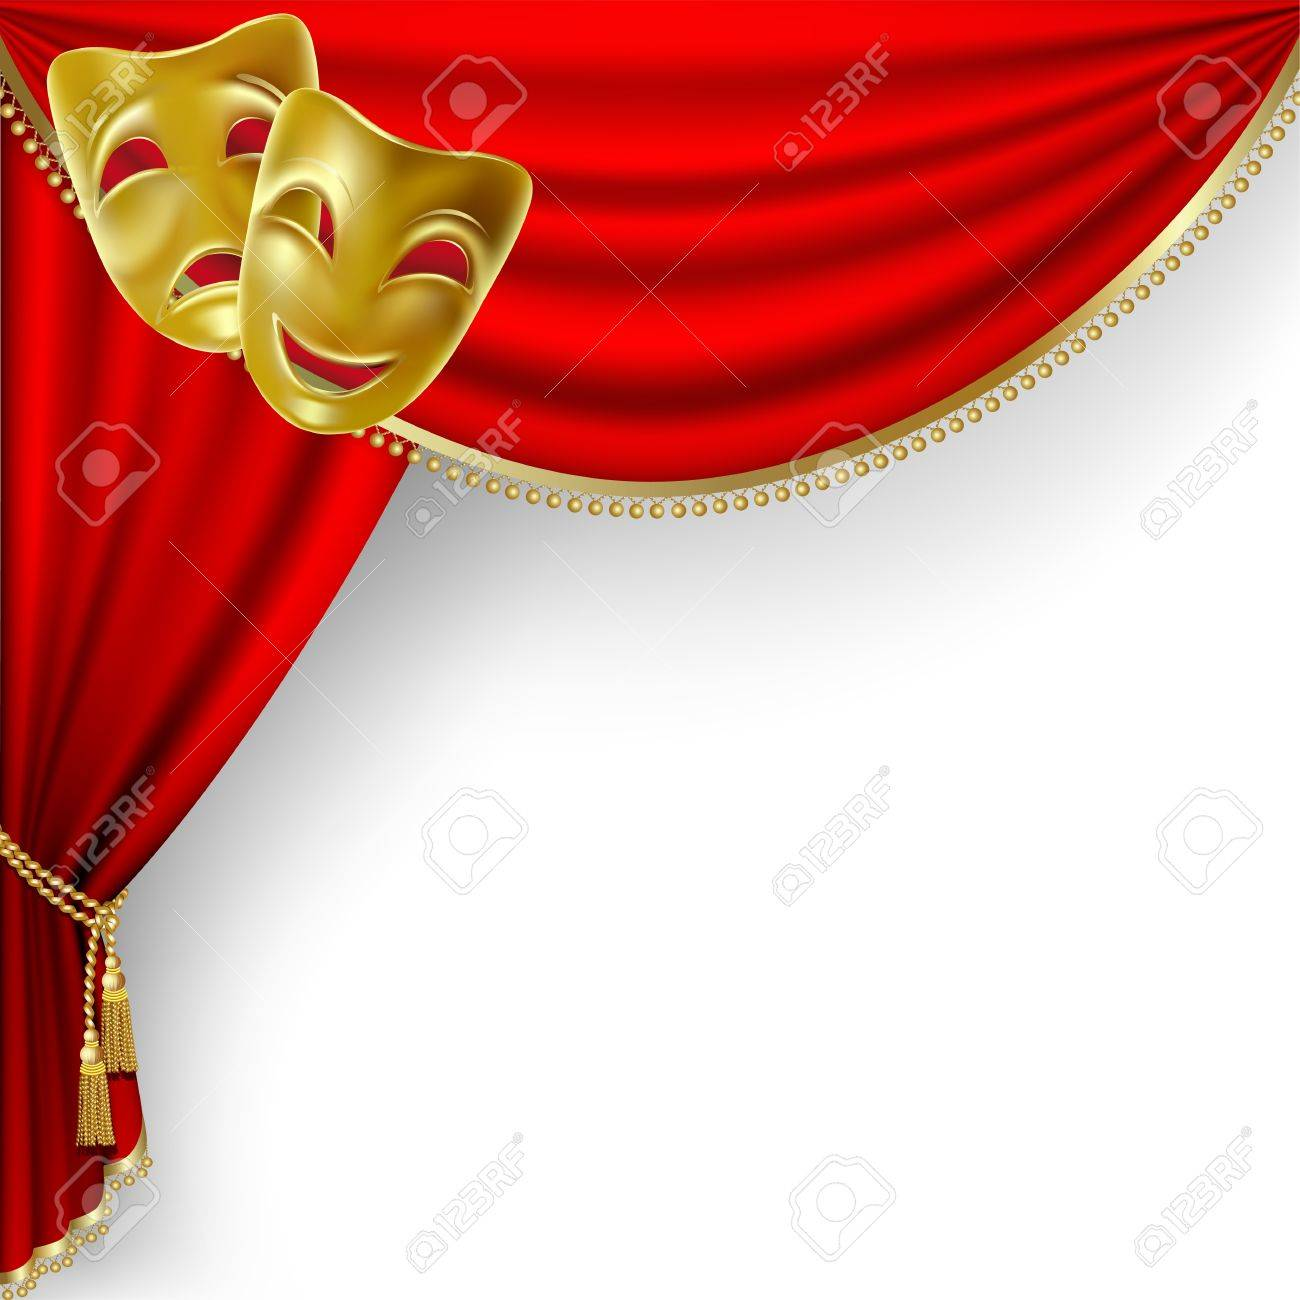 Theater stage with red curtain and masks - 11218745